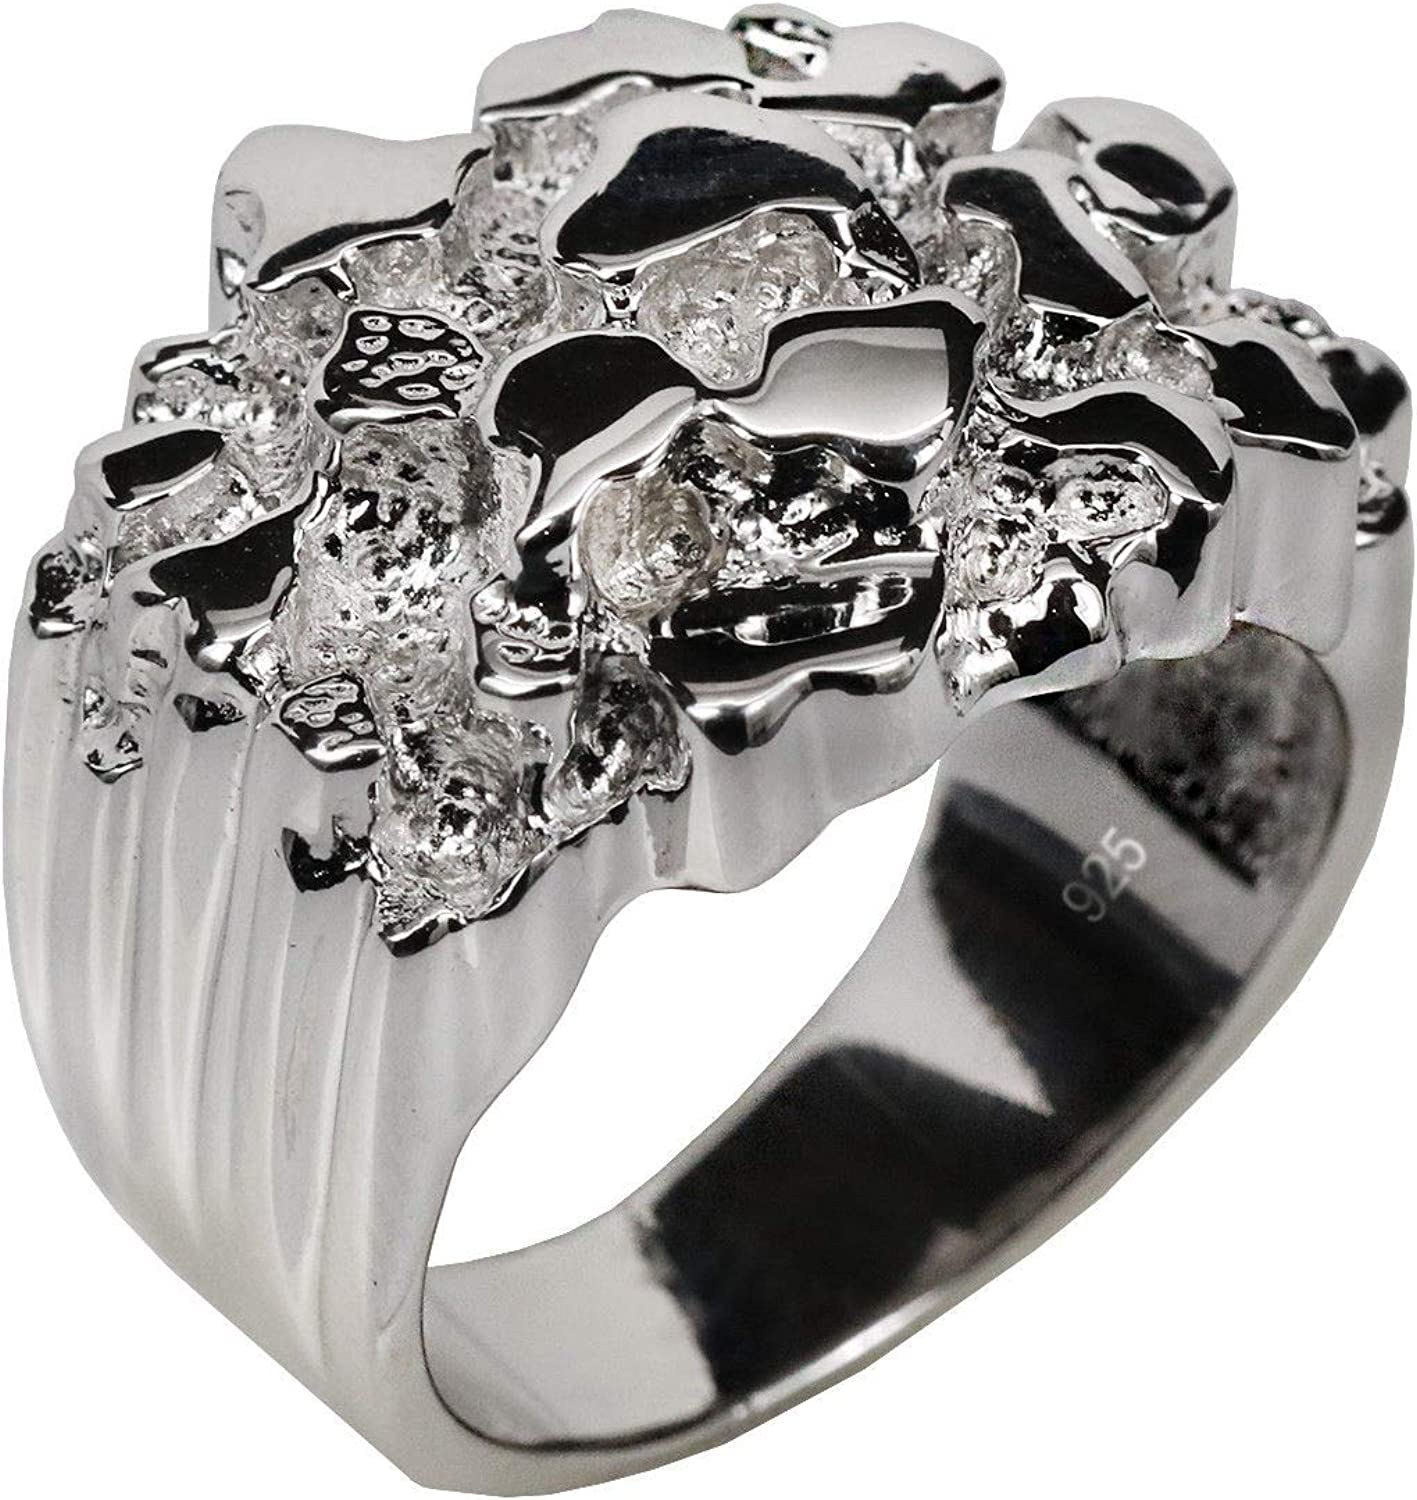 Harlembling Solid 925 Sterling Silver Men's Silver Ring - Nugget Ring - Pinky or Ring Finger - Sizes 7-13